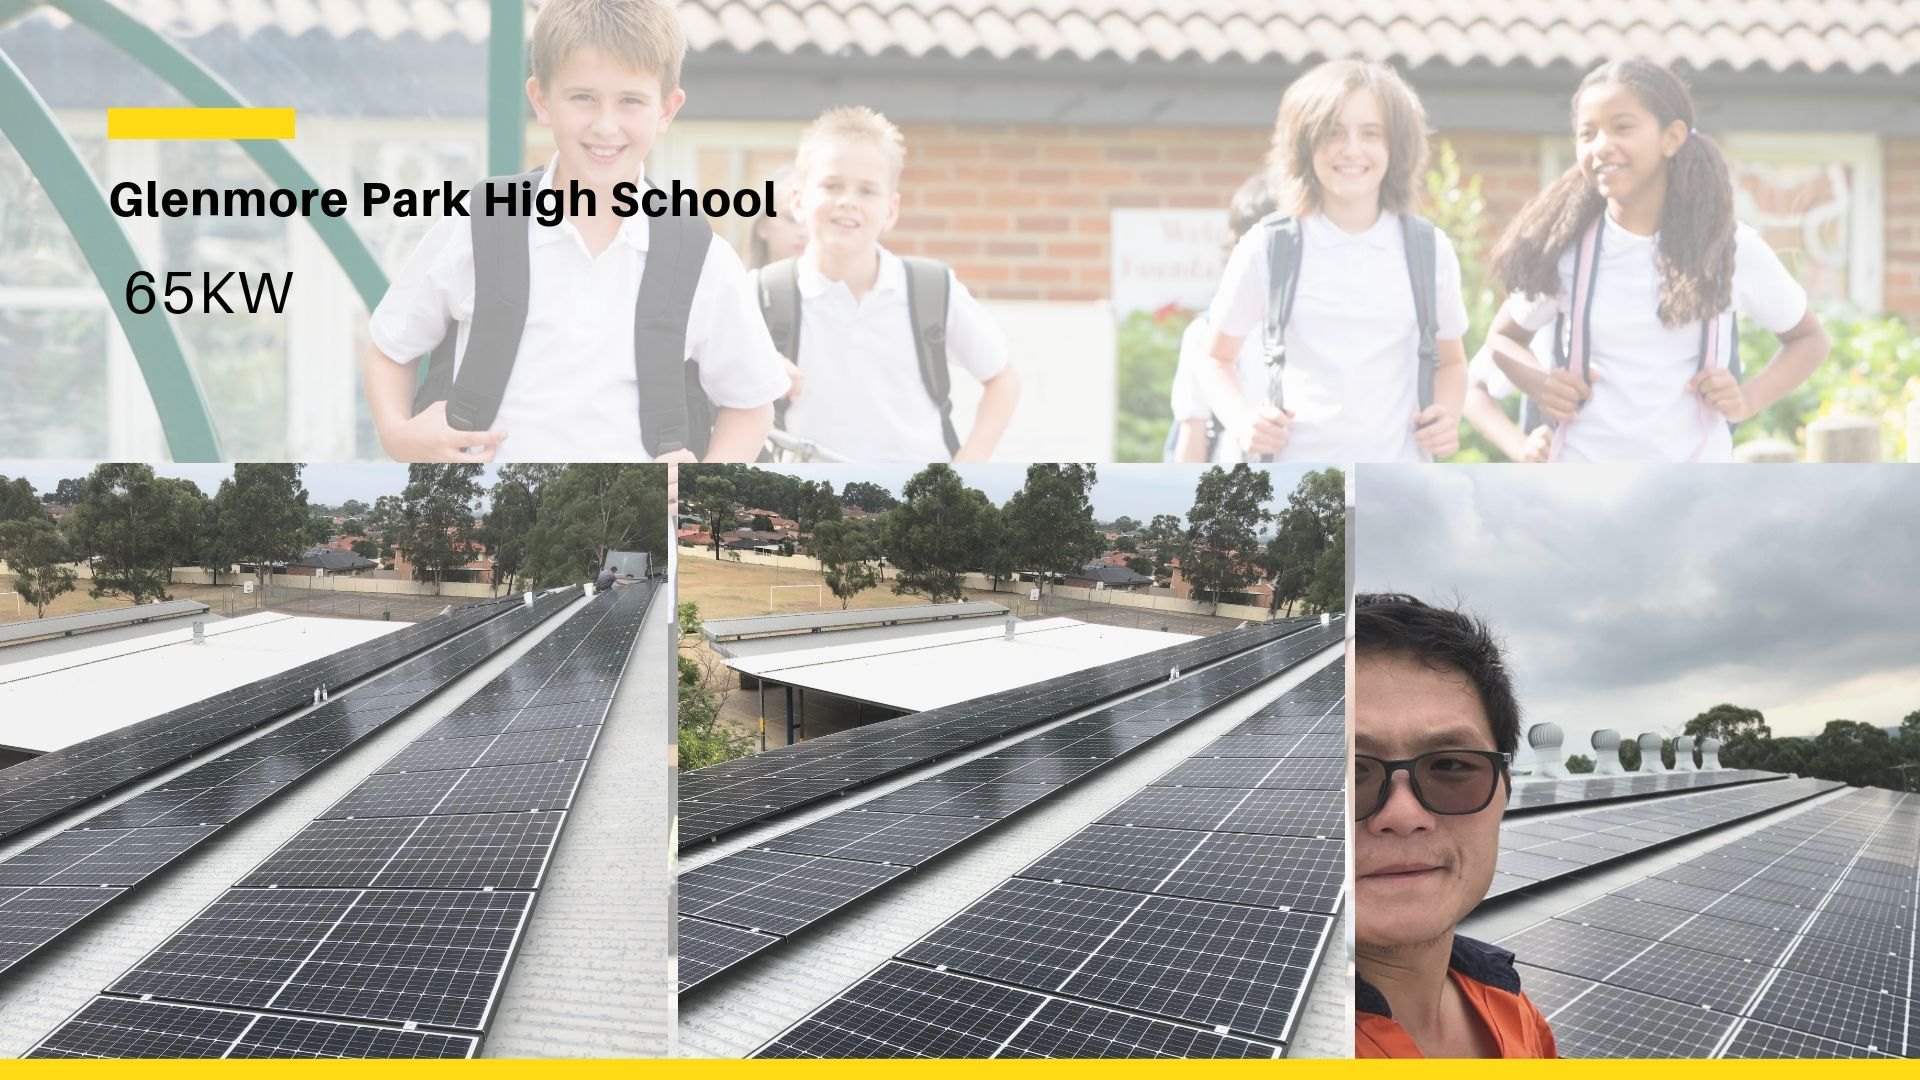 GLENMORE PARK HIGH 65KW